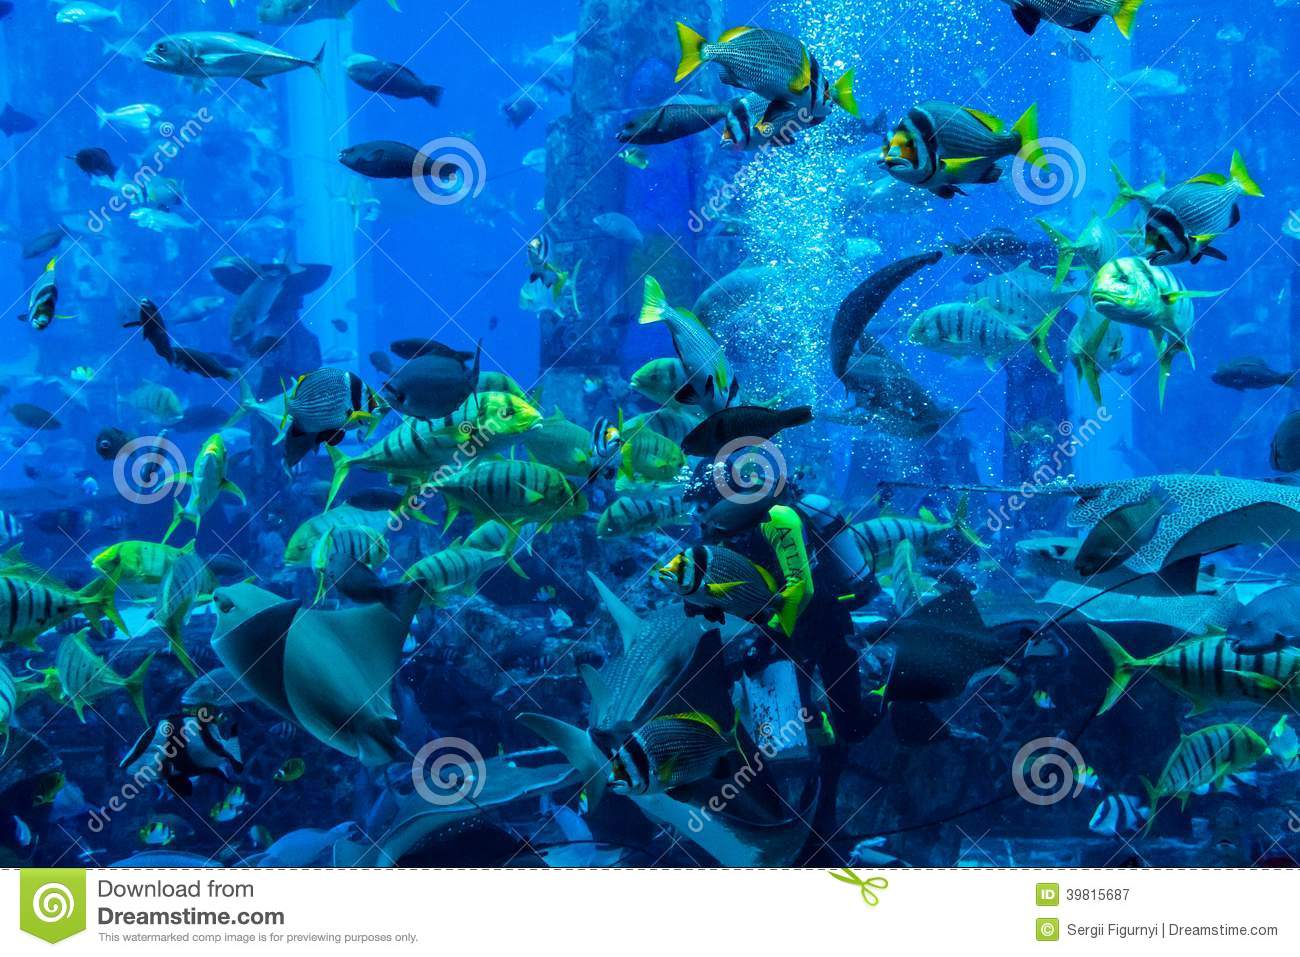 Fish aquarium in uae - Huge Aquarium In Dubai Diver Feeding Fishes Editorial Photography